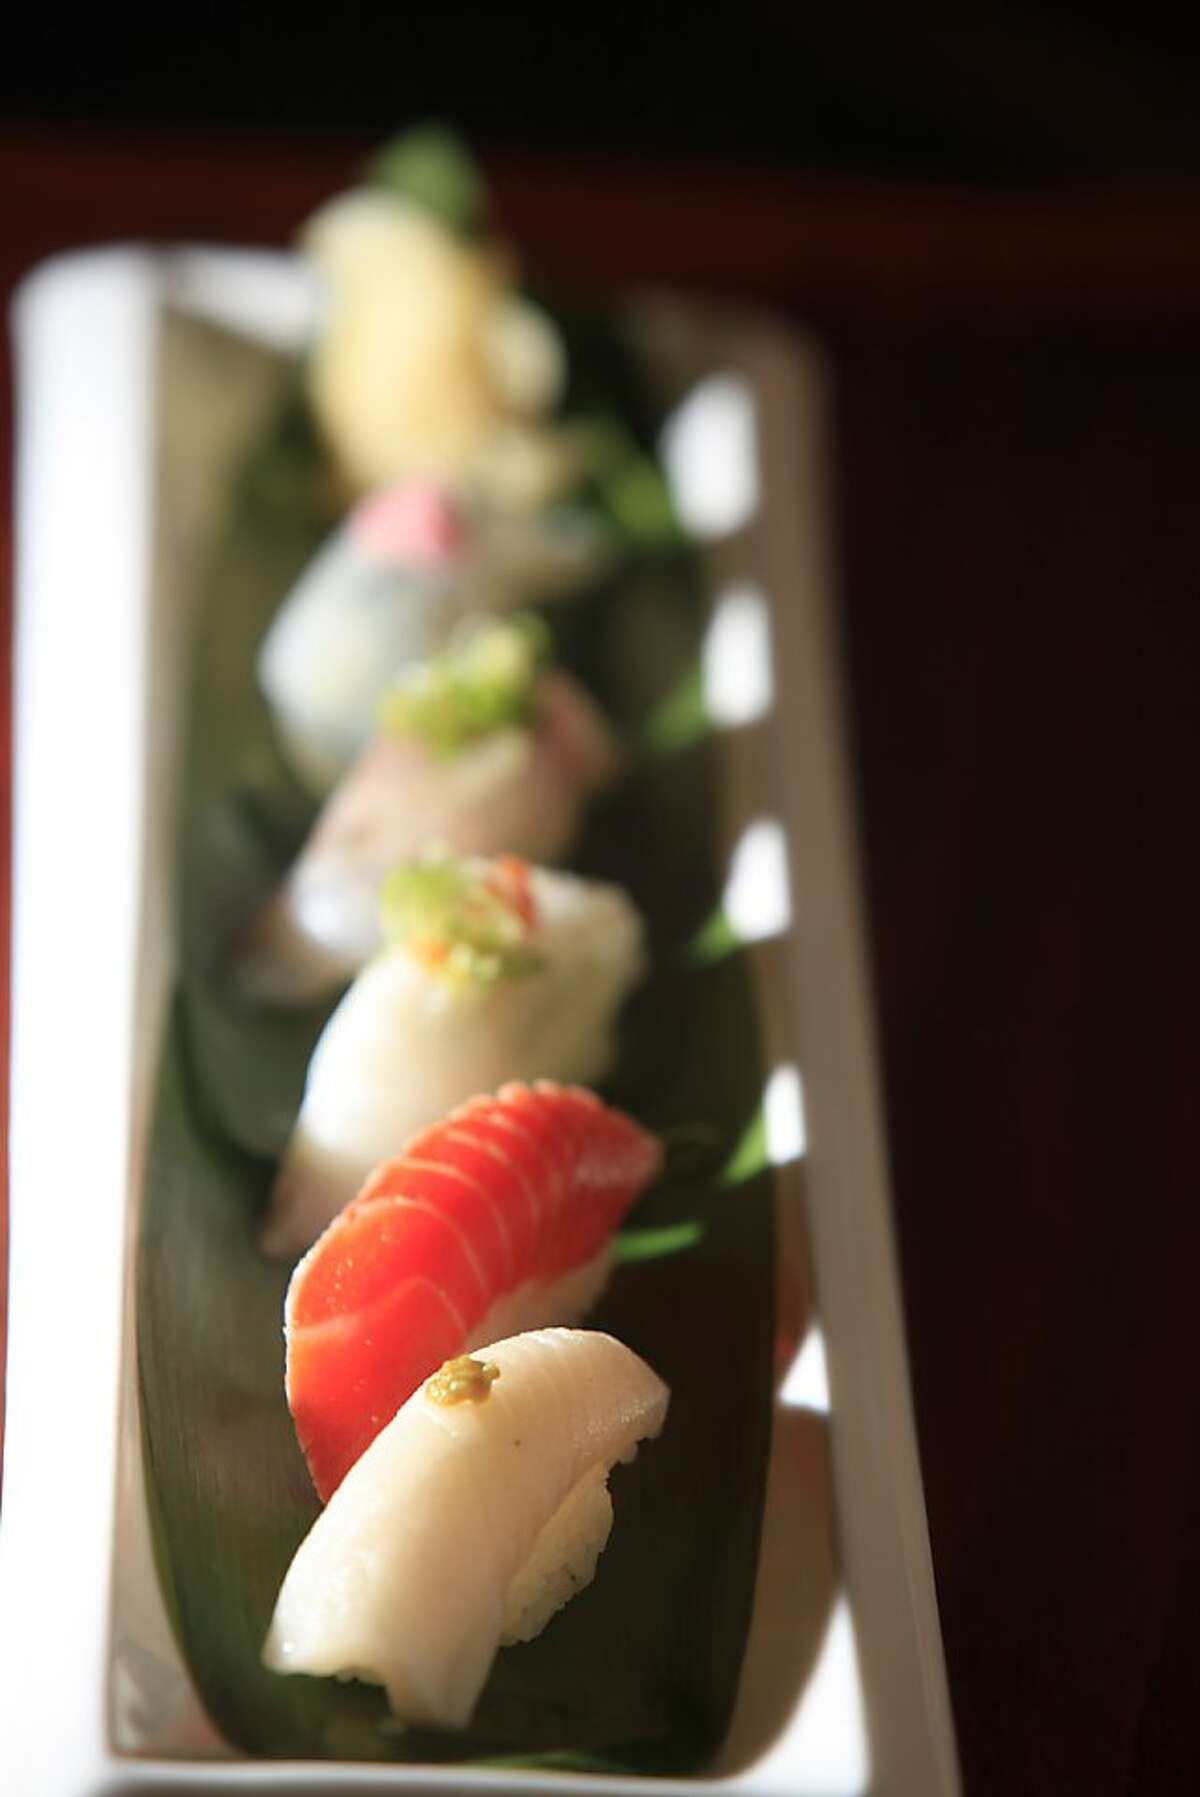 An assortment of sushi is seen at a sushi restaurant in Marin County on Monday November 16, 2009.